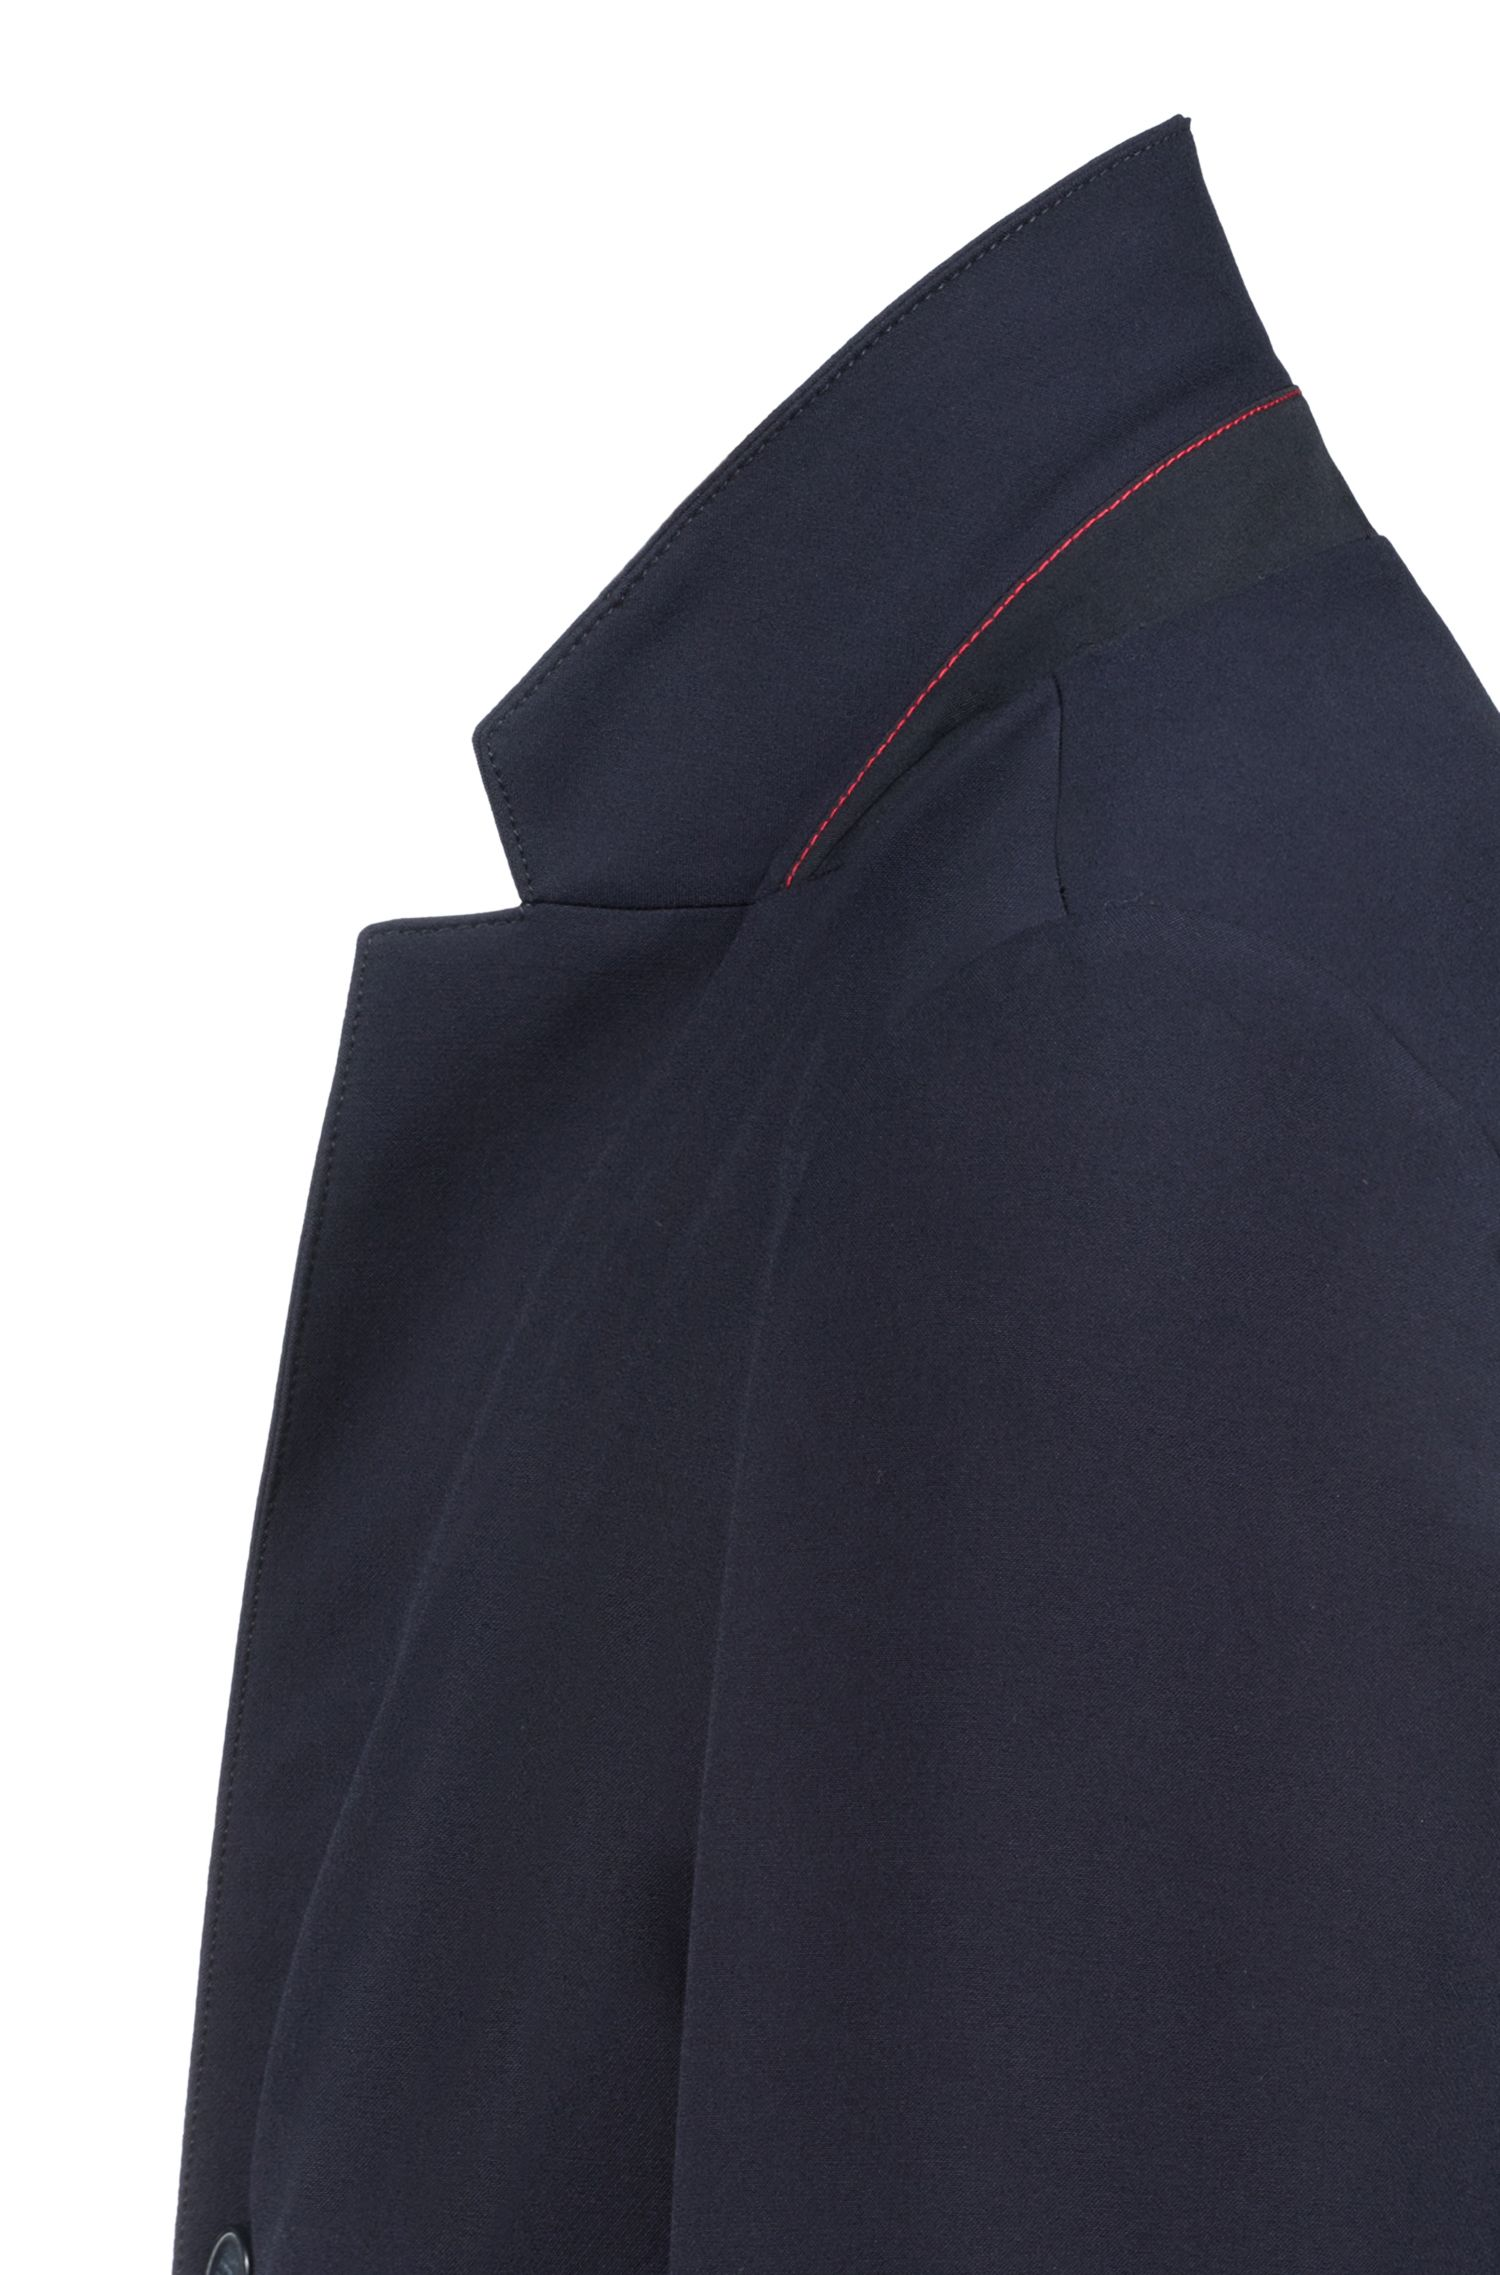 Manteau Slim Fit en tissu stretch à revers crantés